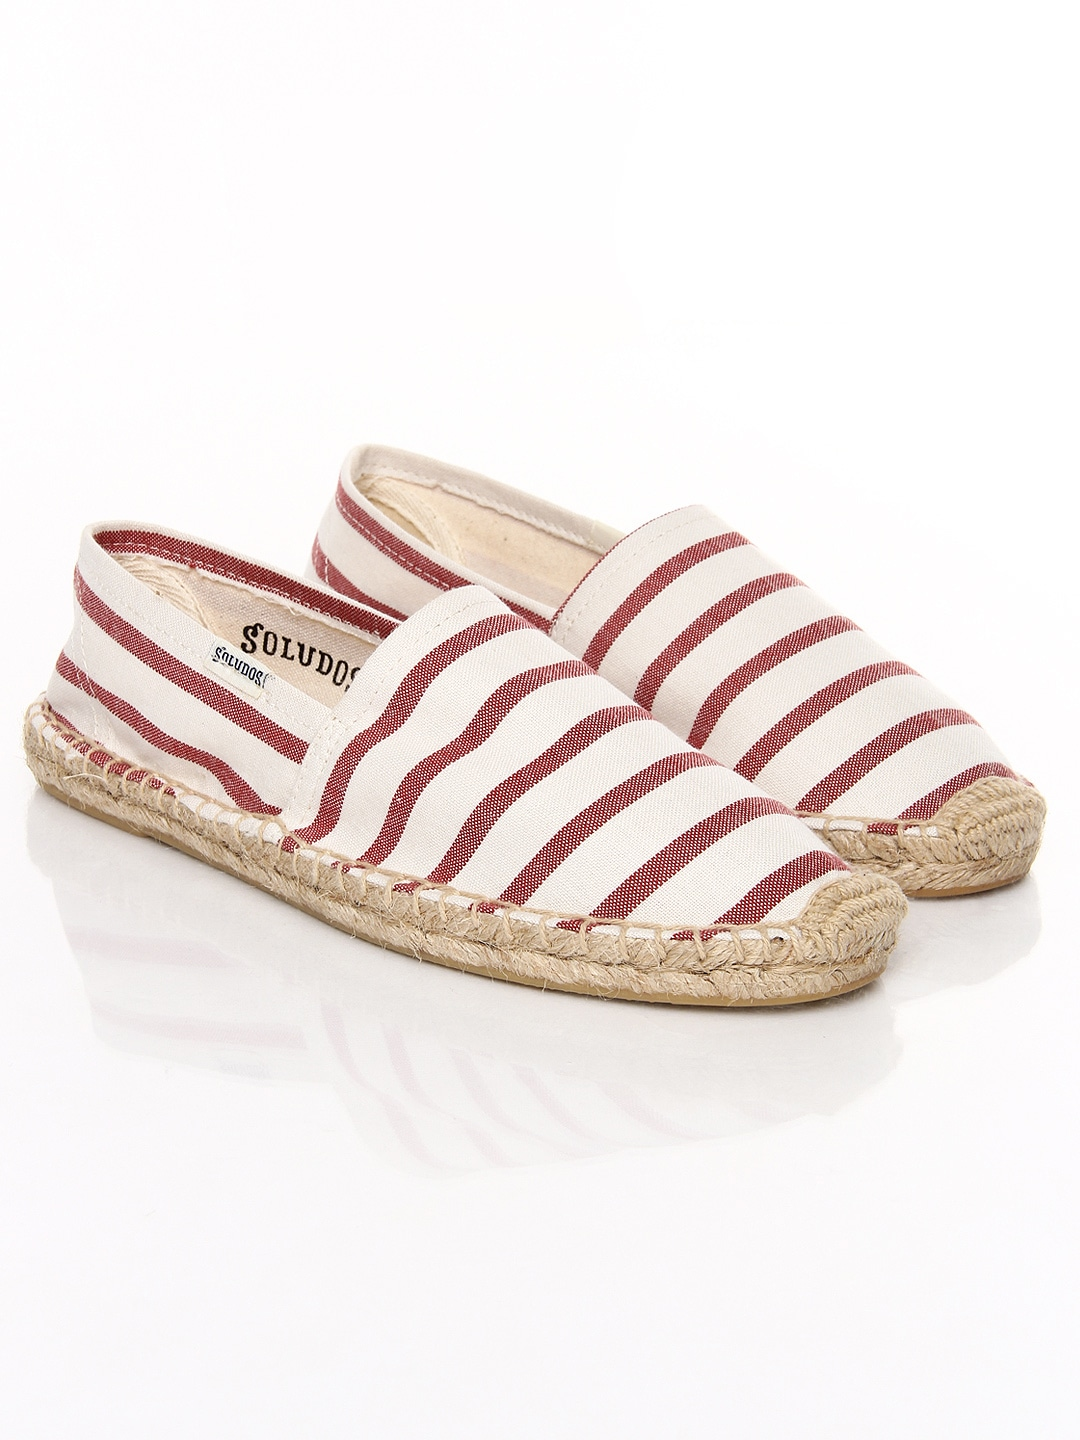 Superdry Espadrille Womens Shoes - Light Marl | Free UK Delivery